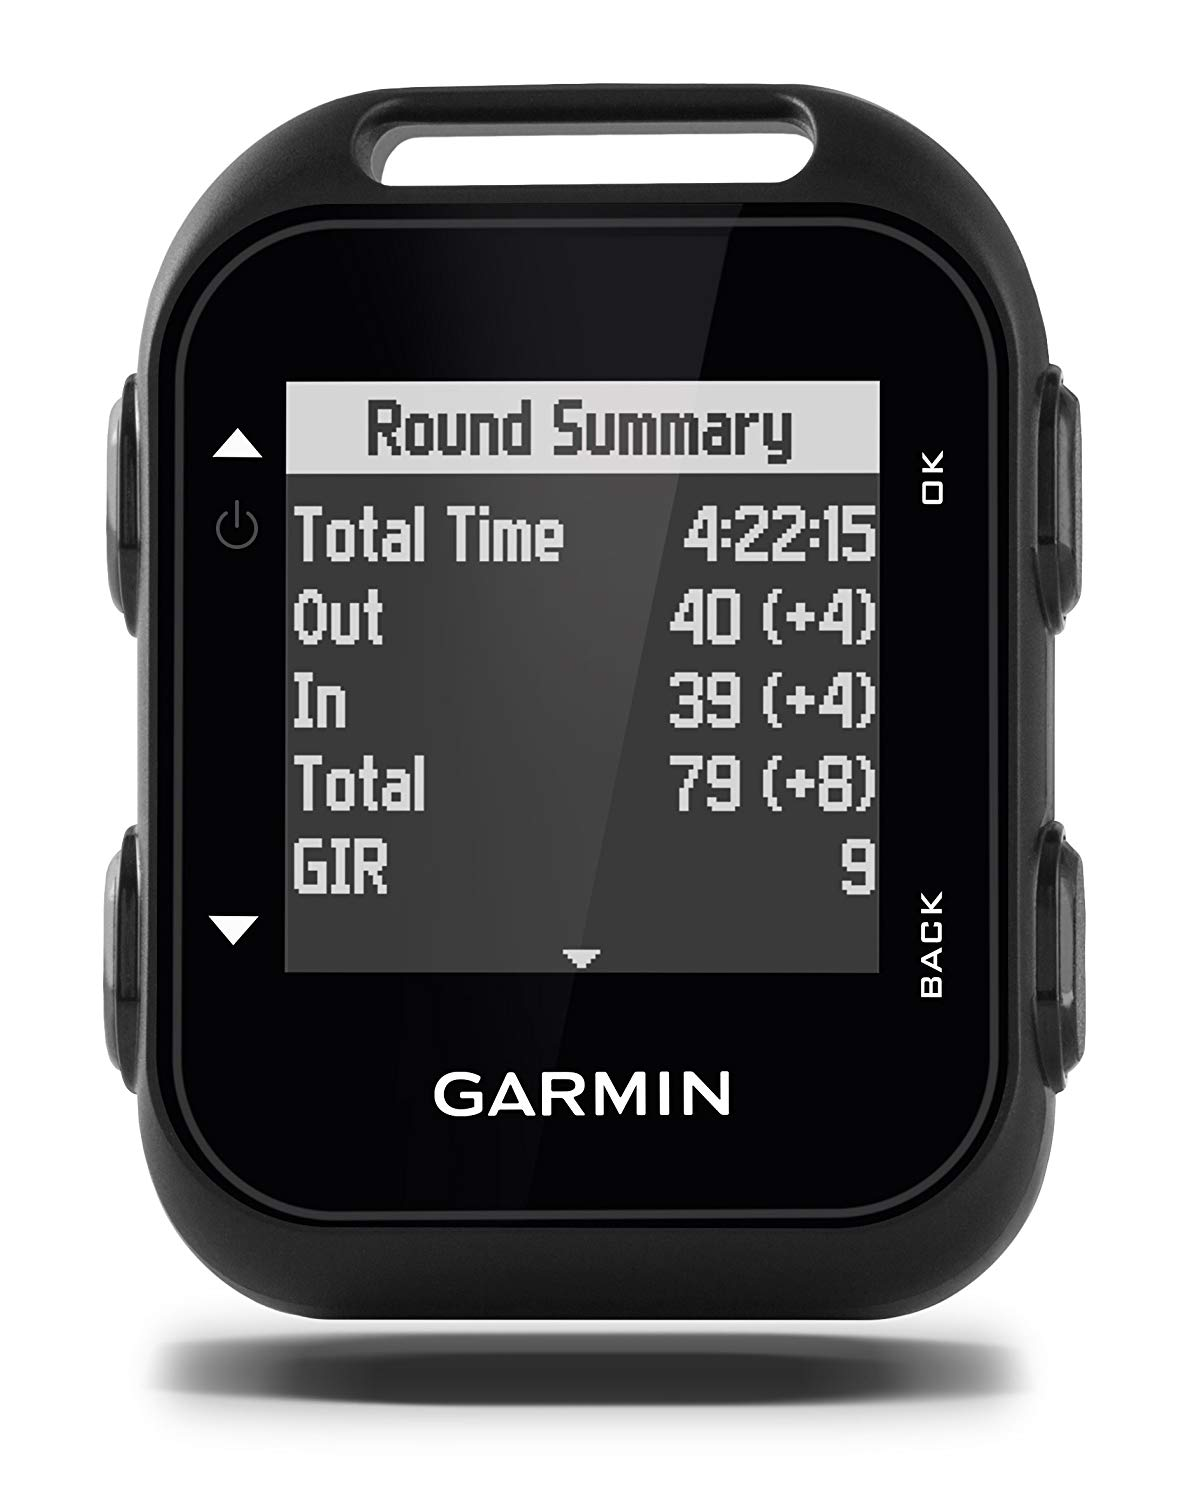 Garmin 010-01959-00 Approach G10 Compact Clip on Golf GPS Device (Black) for £100.00